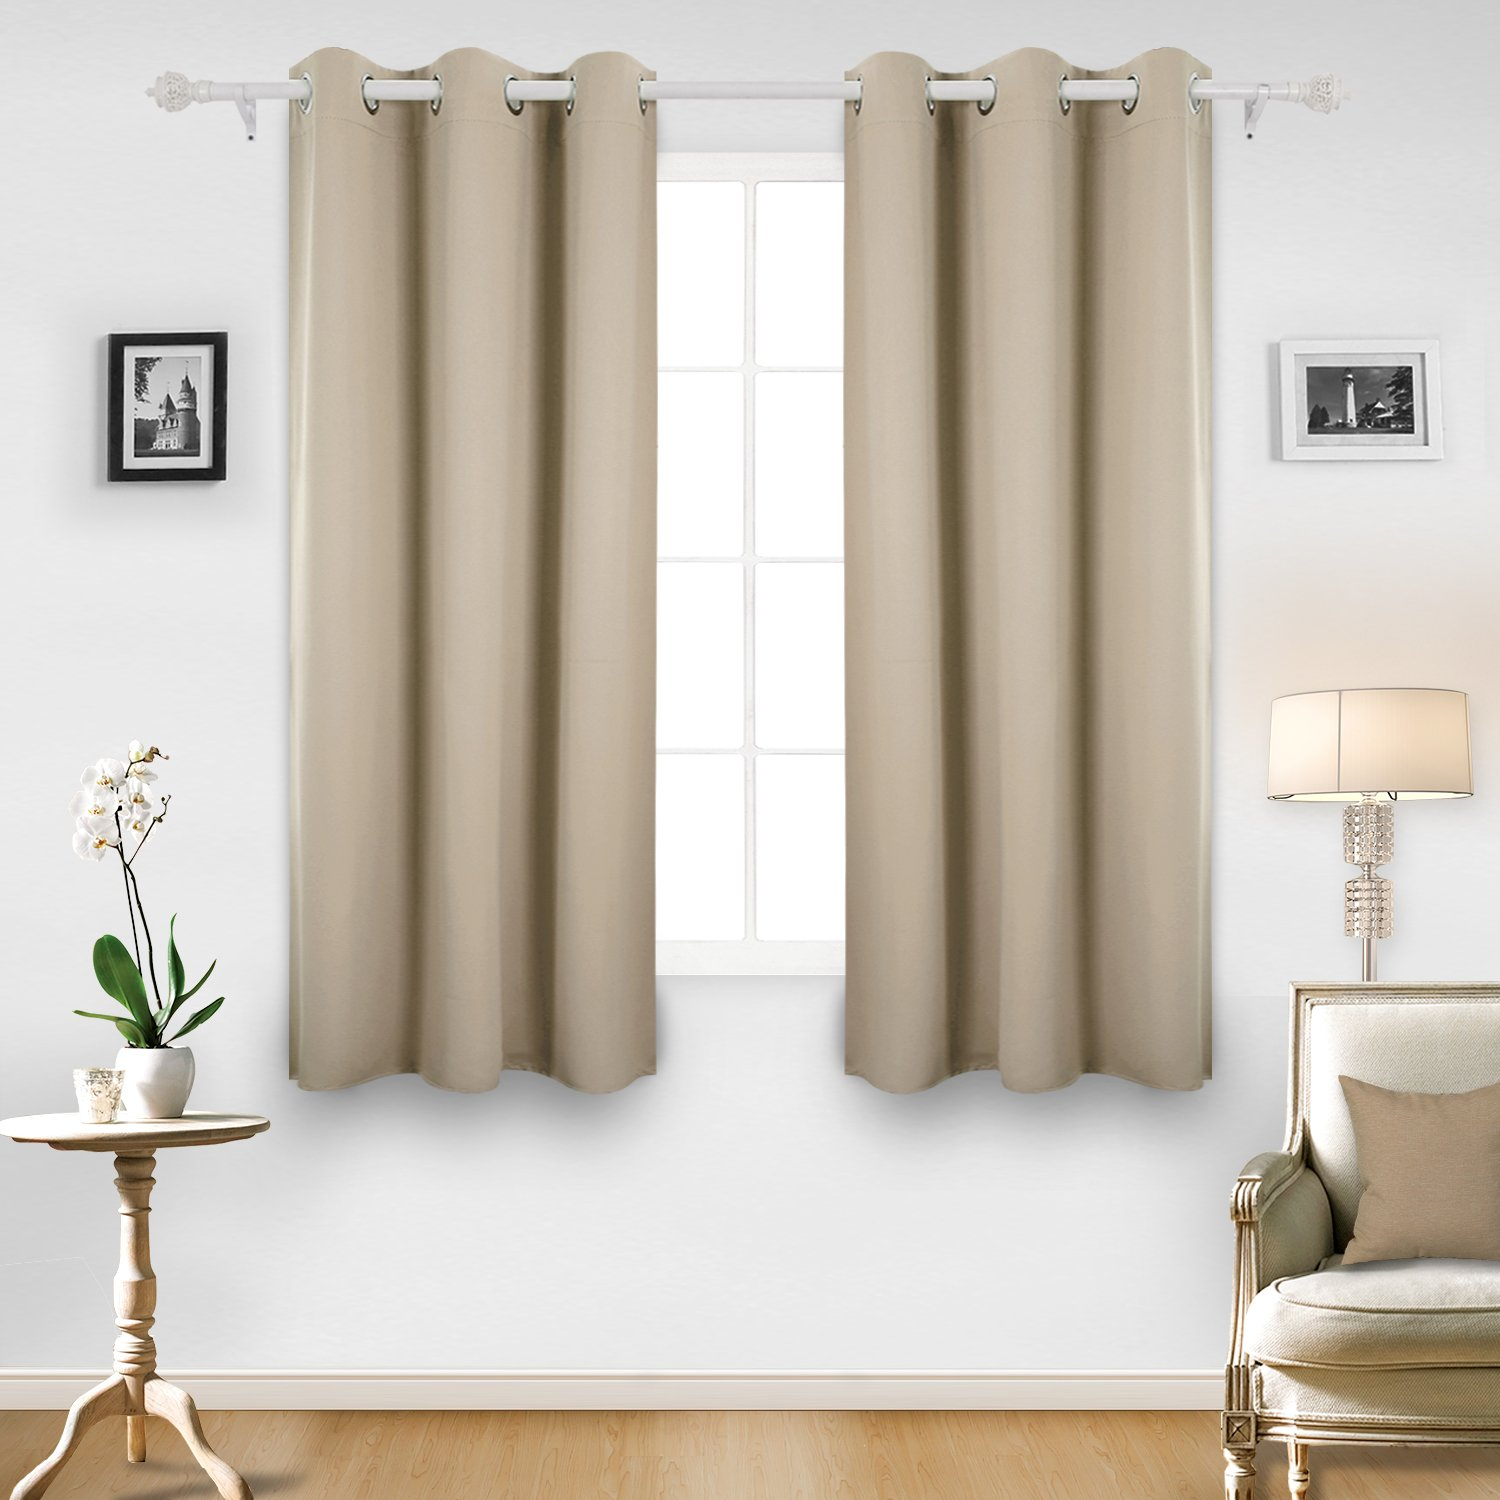 Deconovo Room Darkening Thermal Insulated Blackout Grommet Window Curtain Panel for Living Room, Beige,42x63-Inch,1 Panel by Deconovo (Image #3)